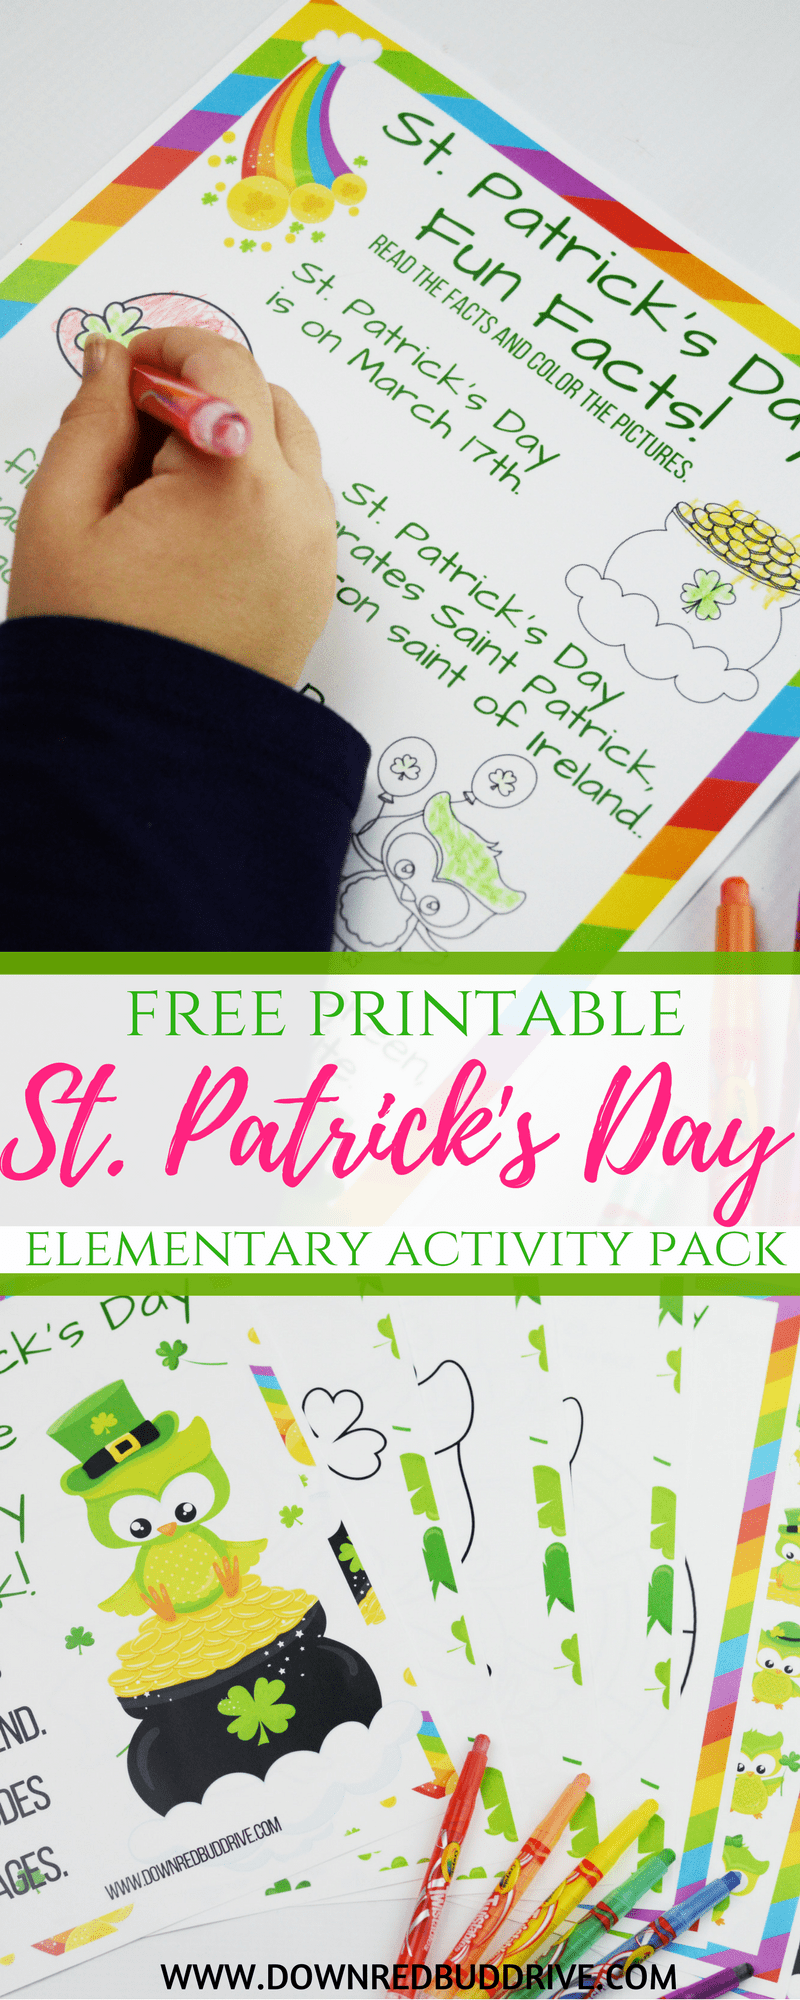 St. Patrick's Day Printable Activity Pack | Free Printables | Free Kids Printables | St. Patrick's Day Printable | Saint Patricks Day Printable | St Patricks Day Printable | Down Redbud Drive #stpatricksday #stpatricksdaykids #saintpatricksday